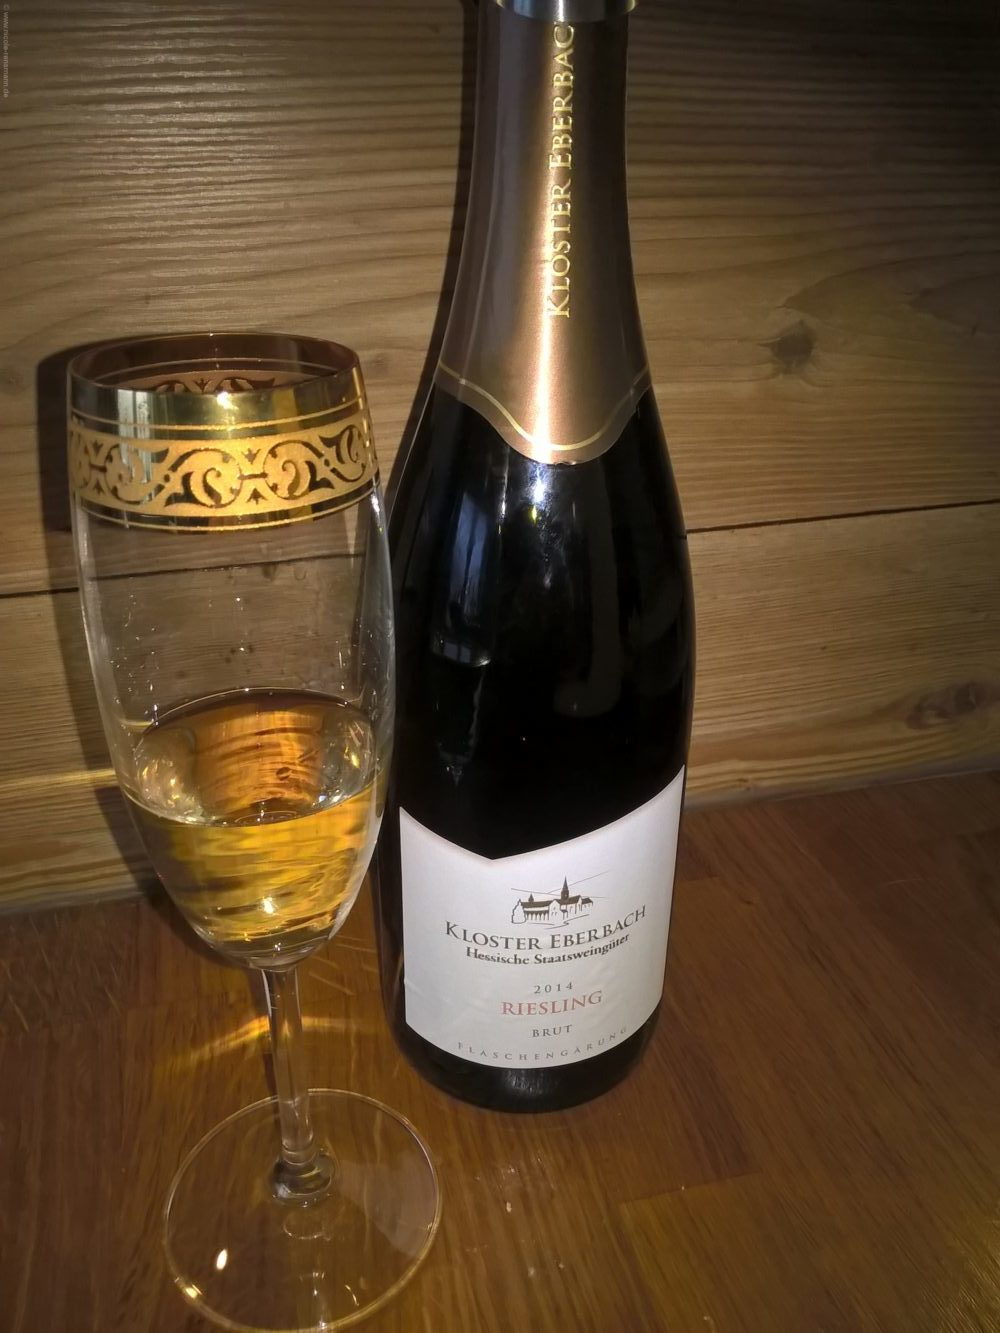 Kloster Eberbach Riesling Brut 2014